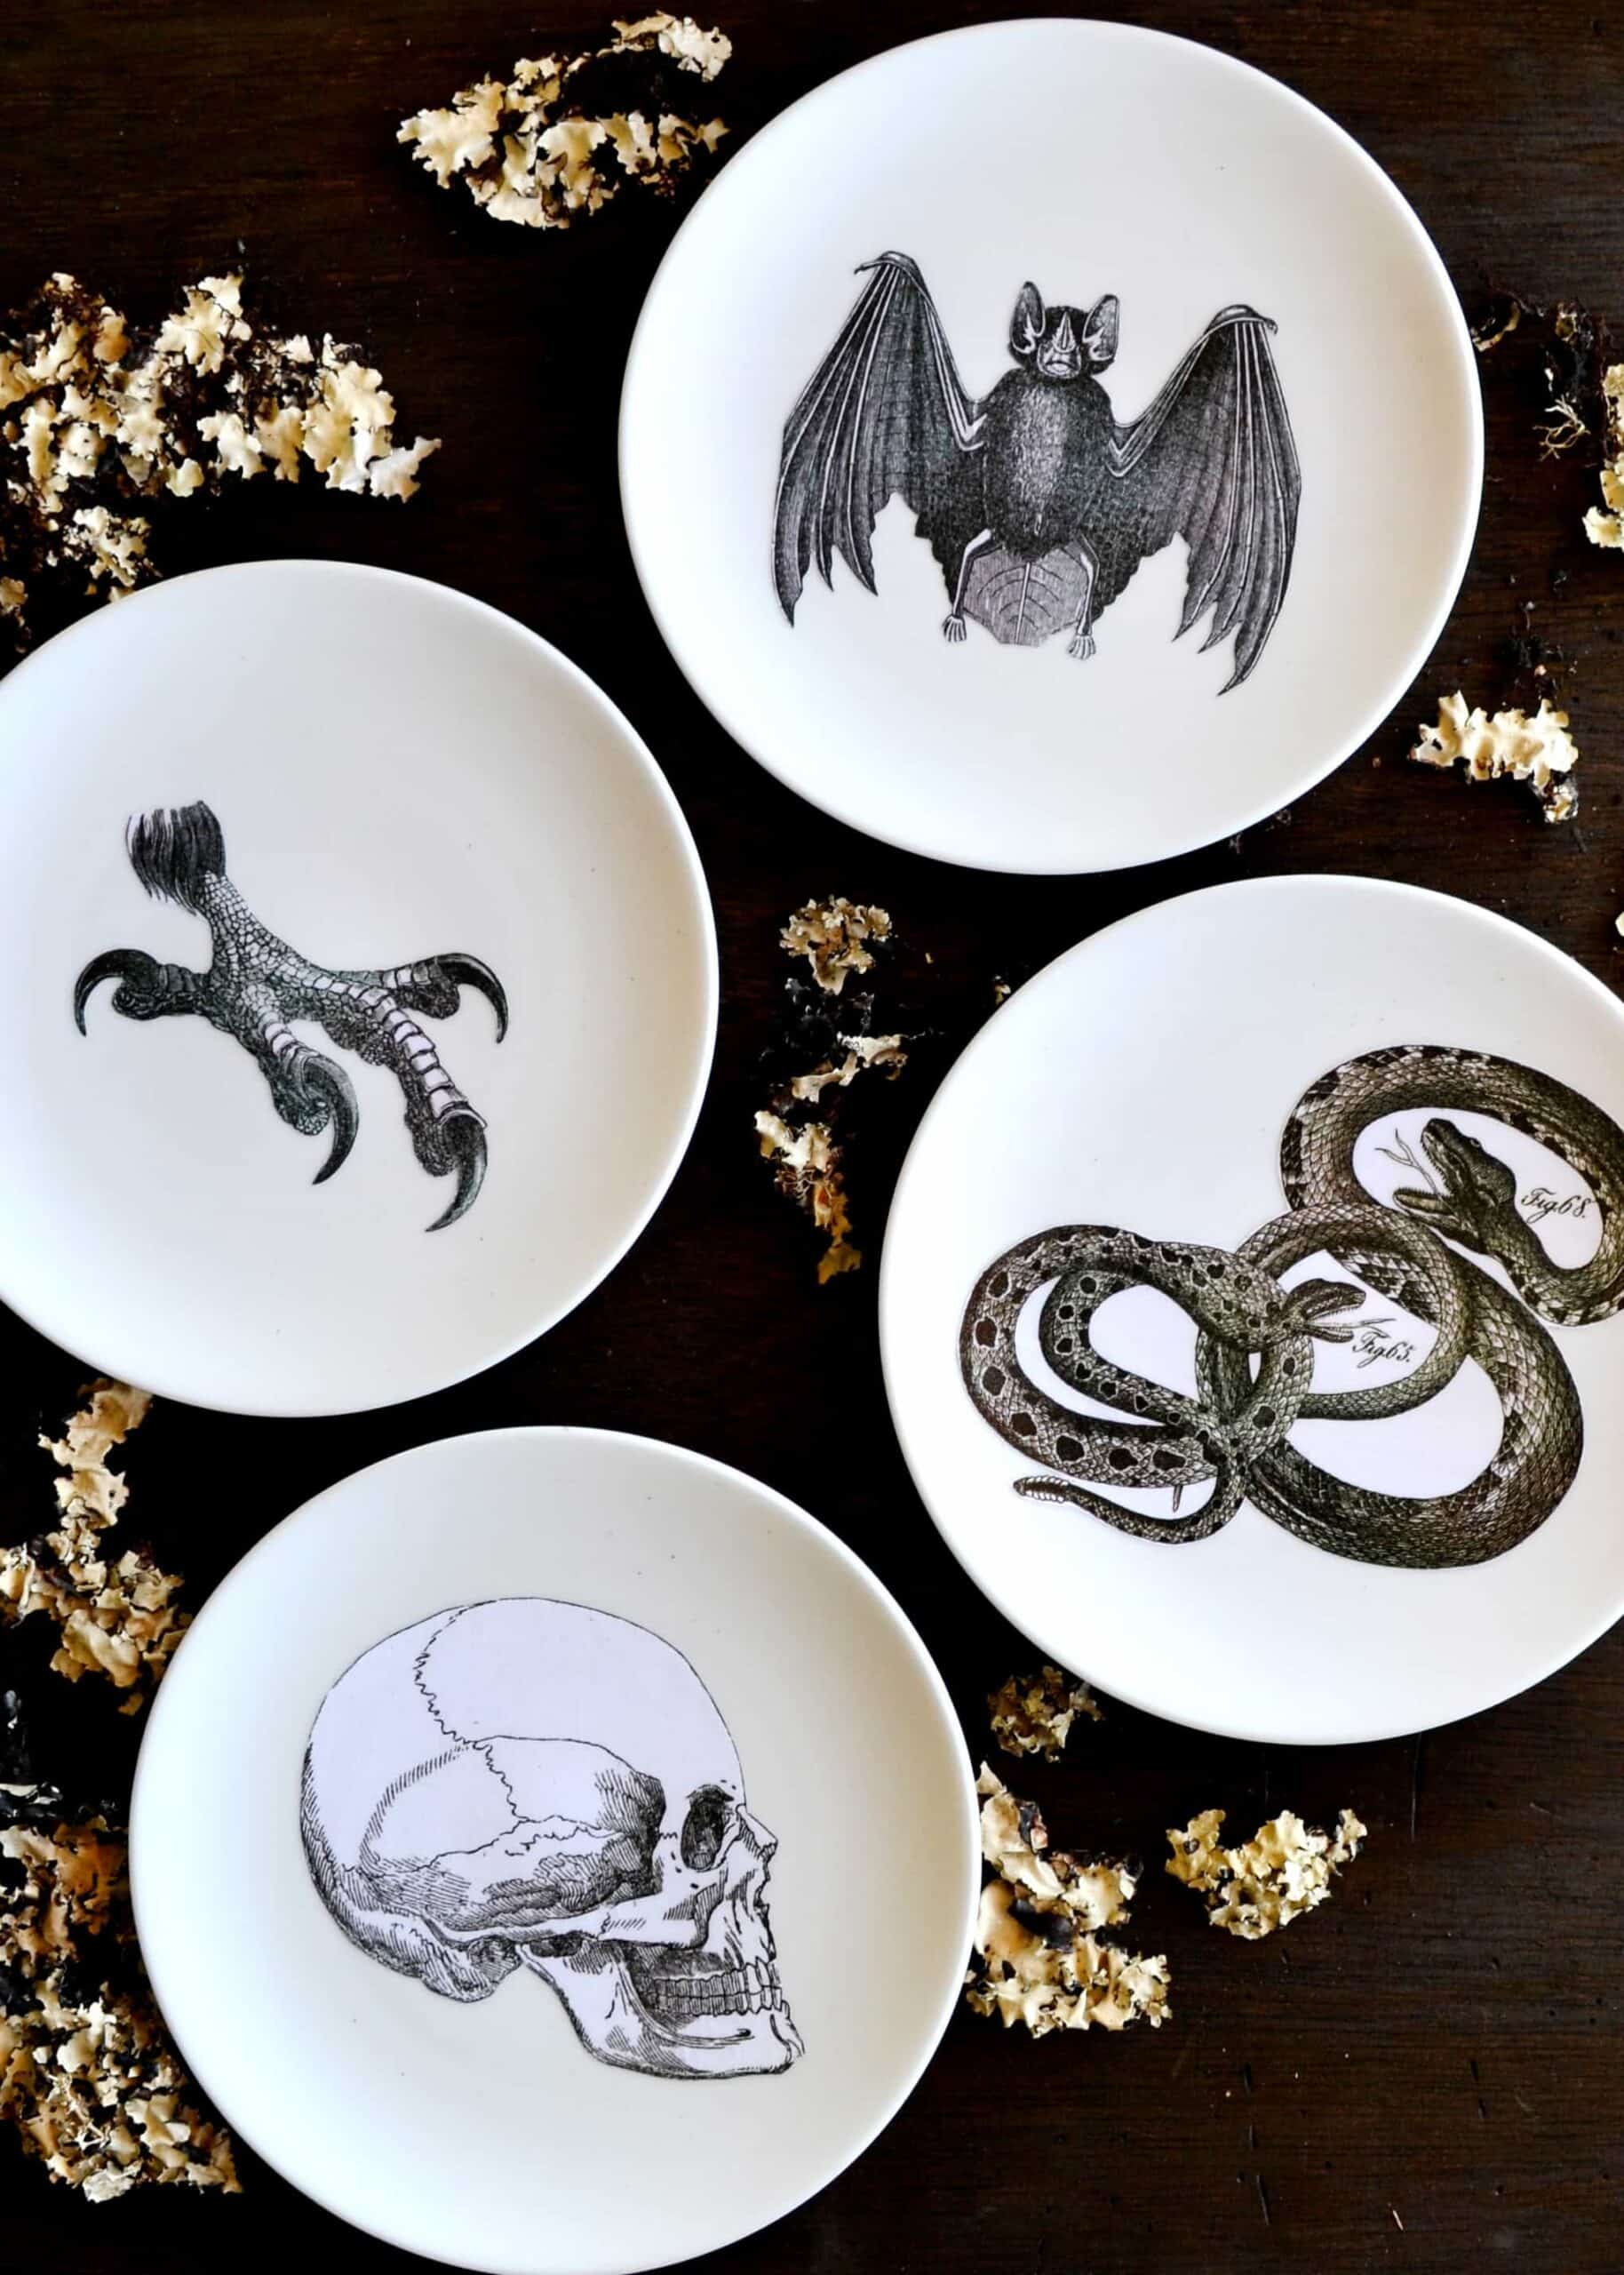 Four plates depicting a snack, a claw, a bat, and a skull on a black table.